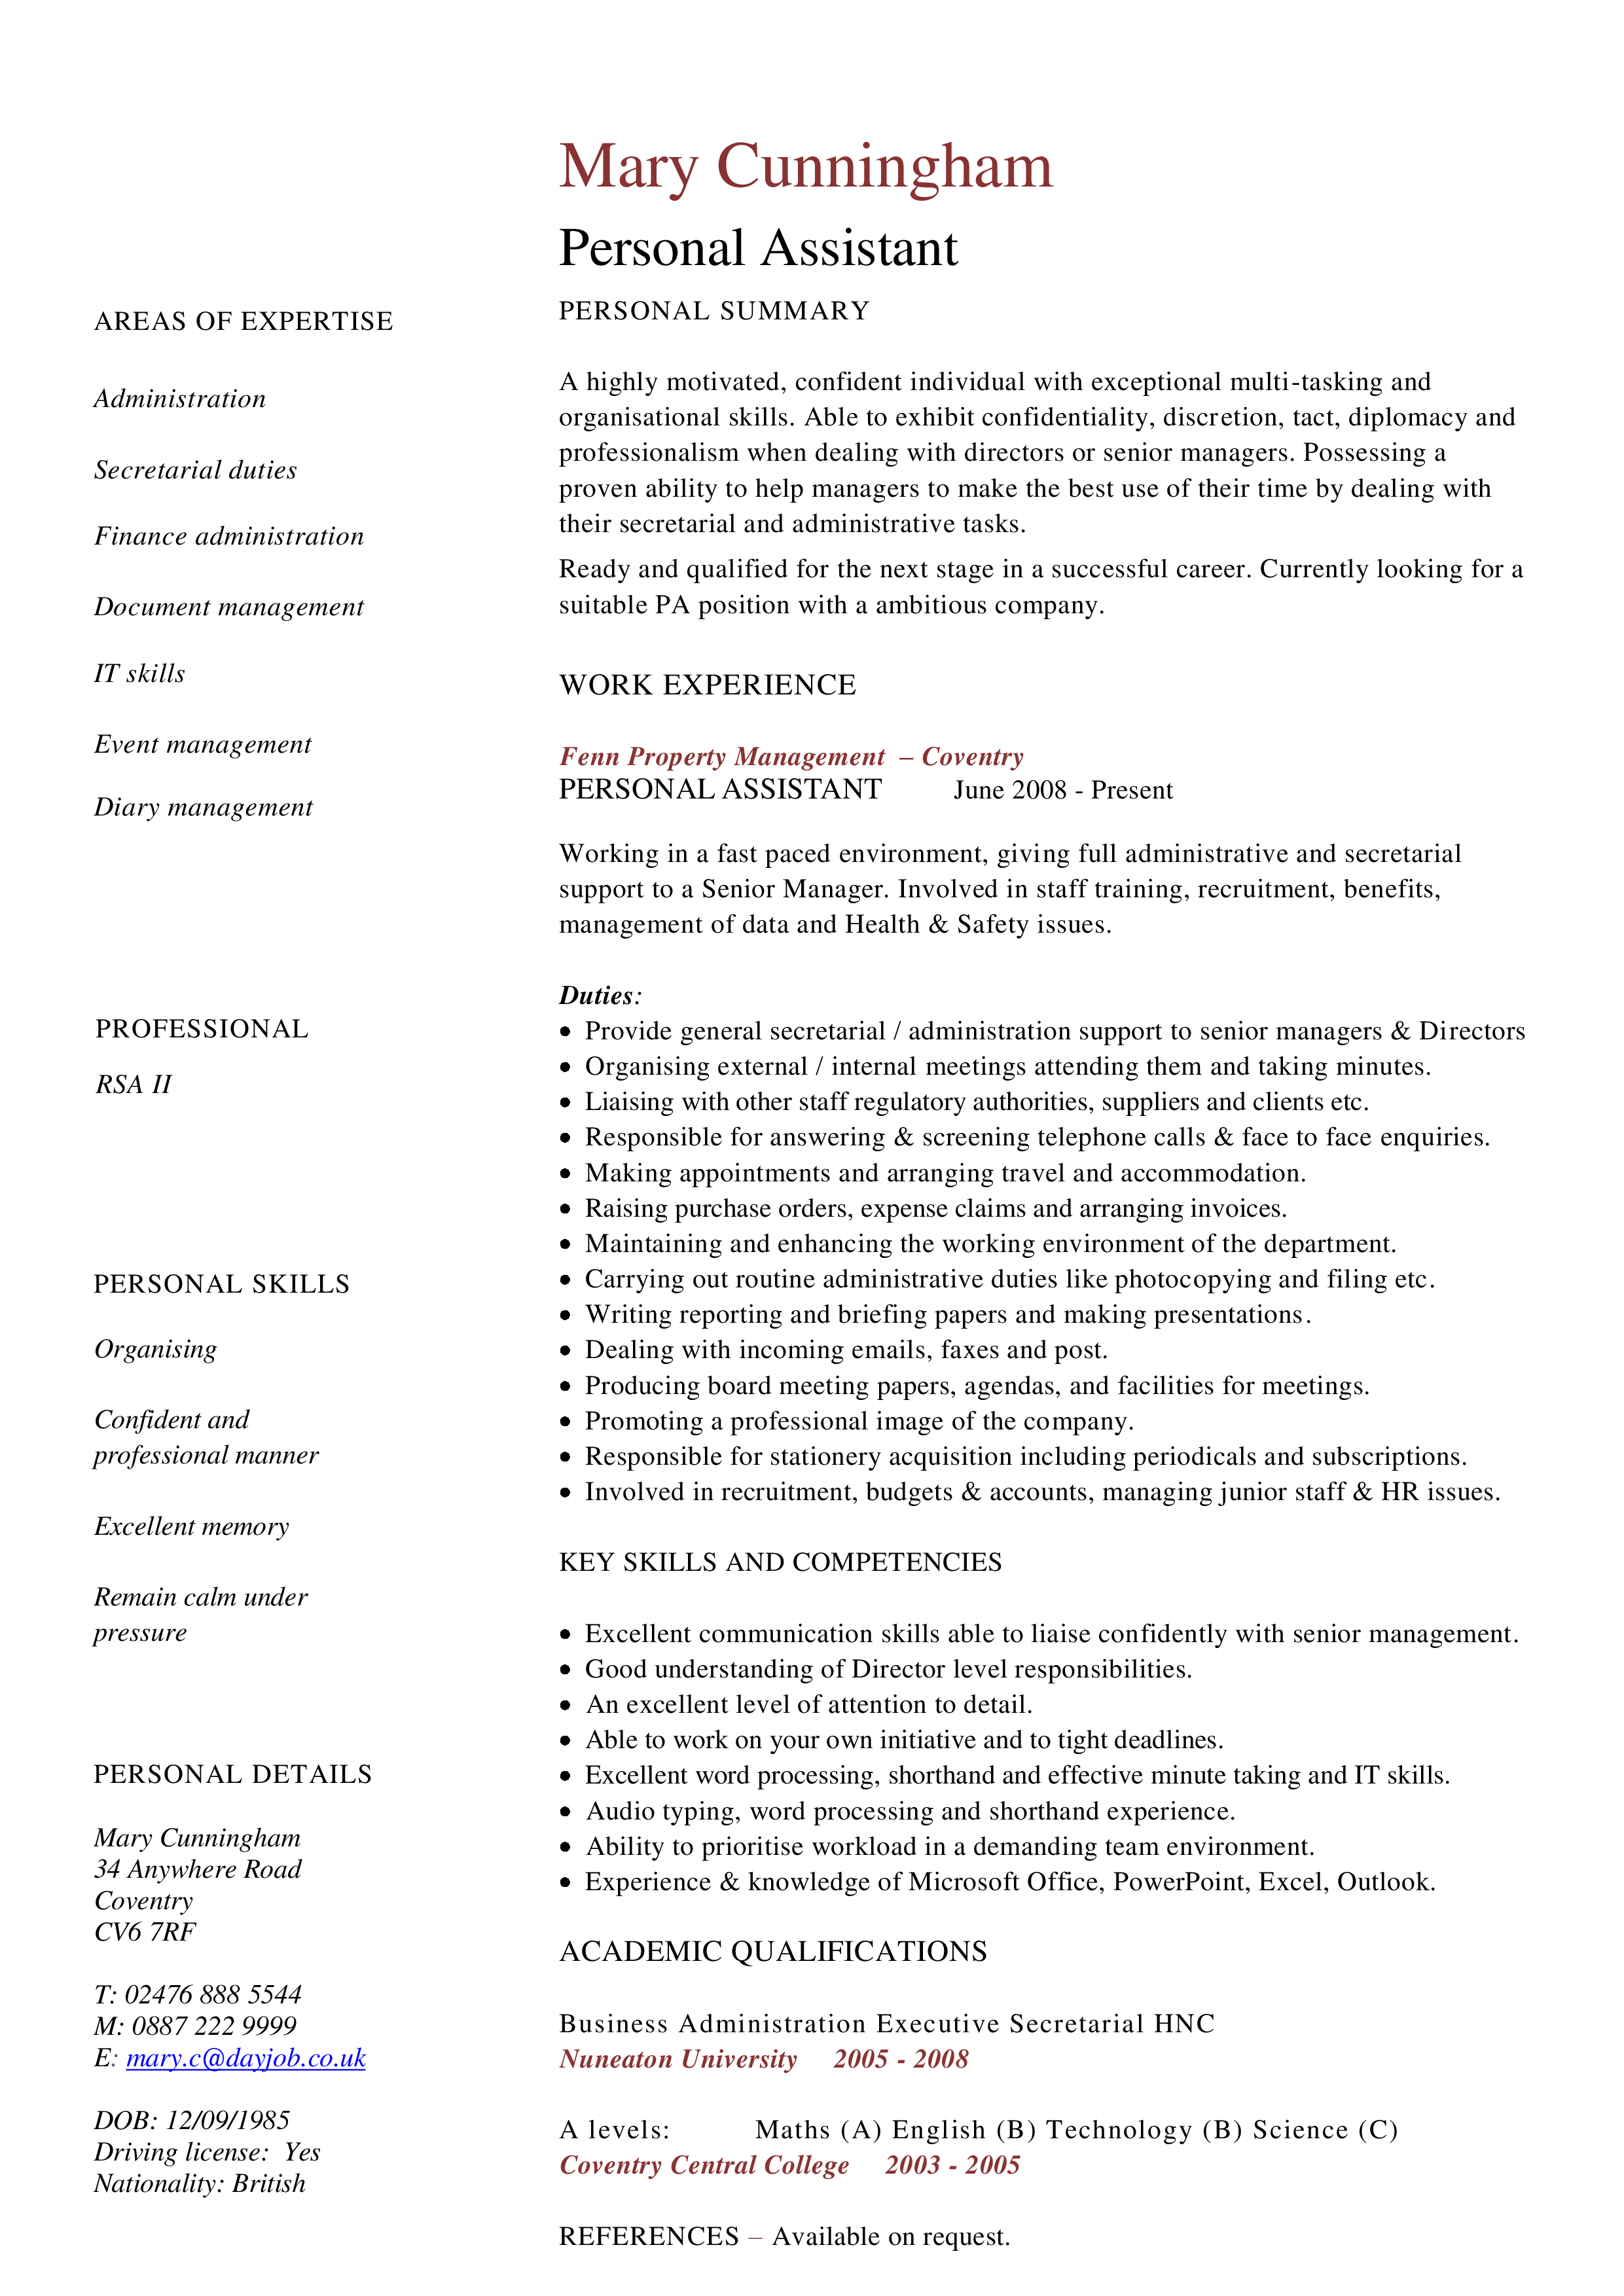 How To Create A Personal Assistant Finance Administration Resume That Will Impress Check Out This Example Of A Finance Admi Finance Jobs Finance Resume Skills